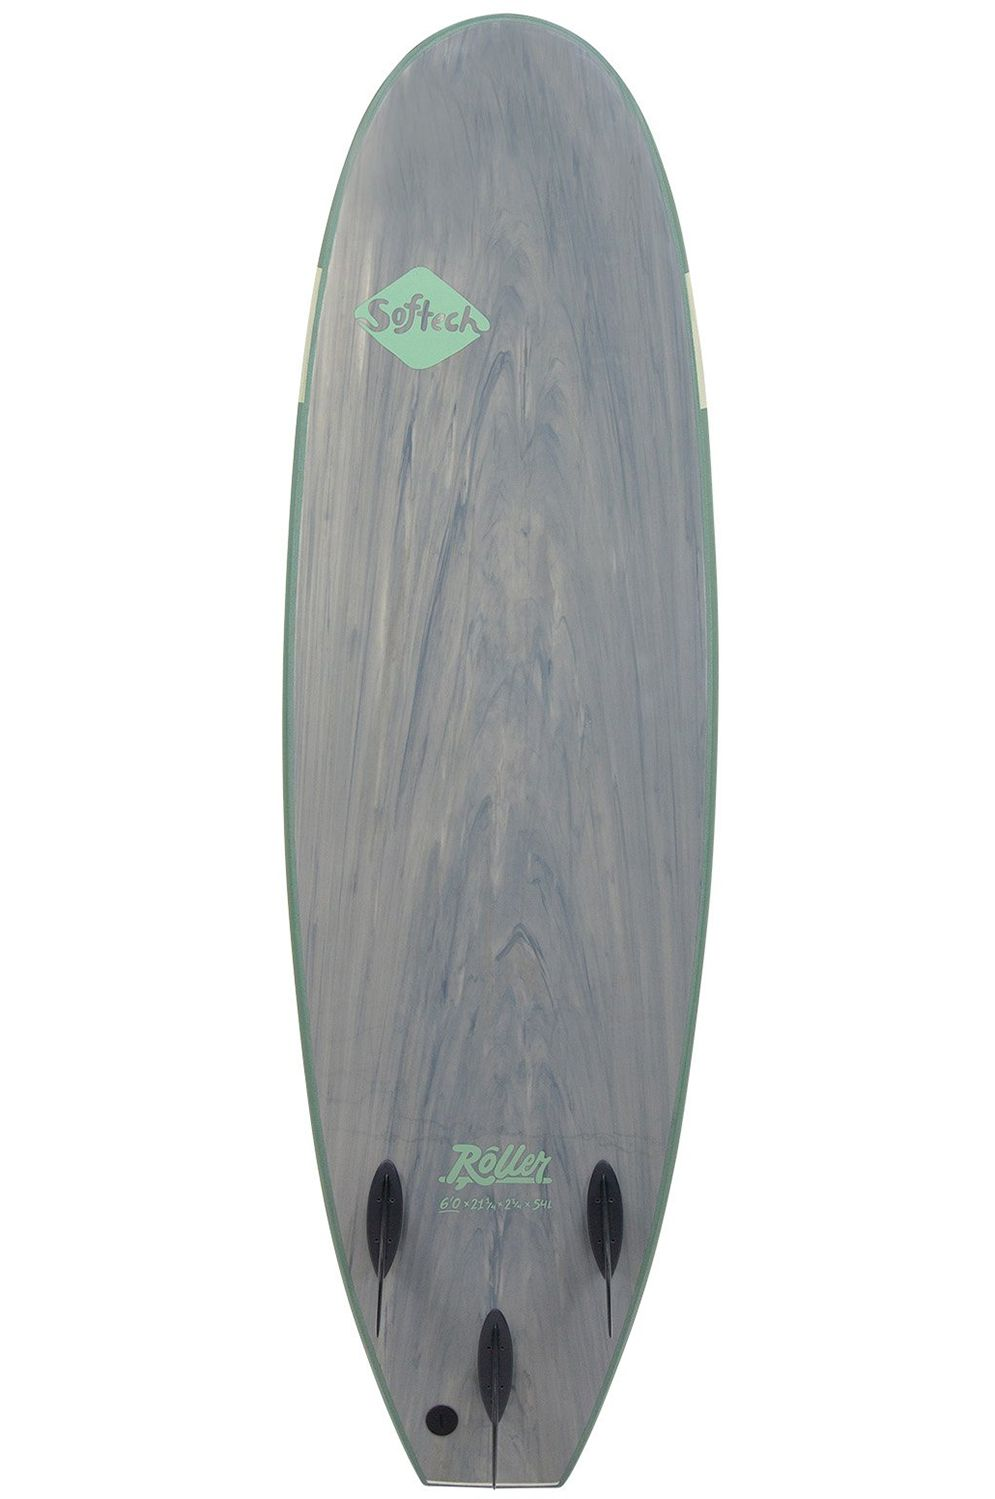 Prancha Surf Softech ROLLER 6'0 SMOKE GREEN Square Tail - Color FCS 6ft0